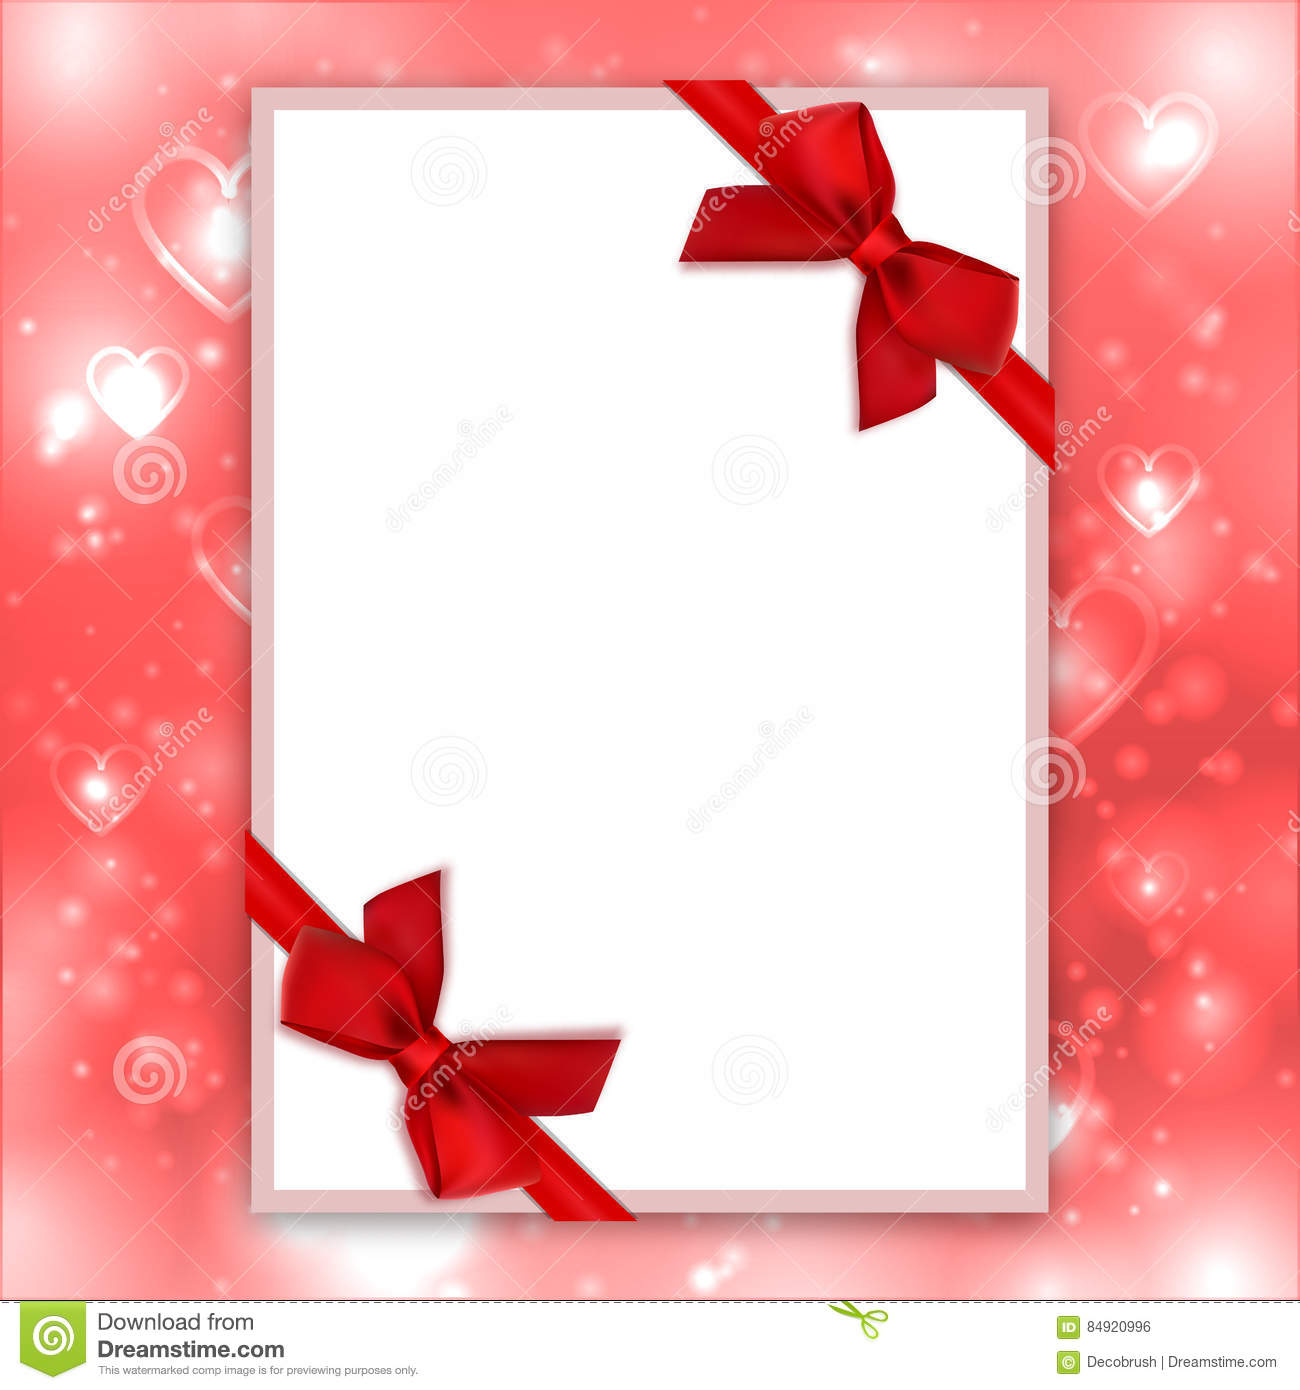 Blank Greeting Card Red Bows Ribbons Love Backdrop Valentine - Blank birthday card template